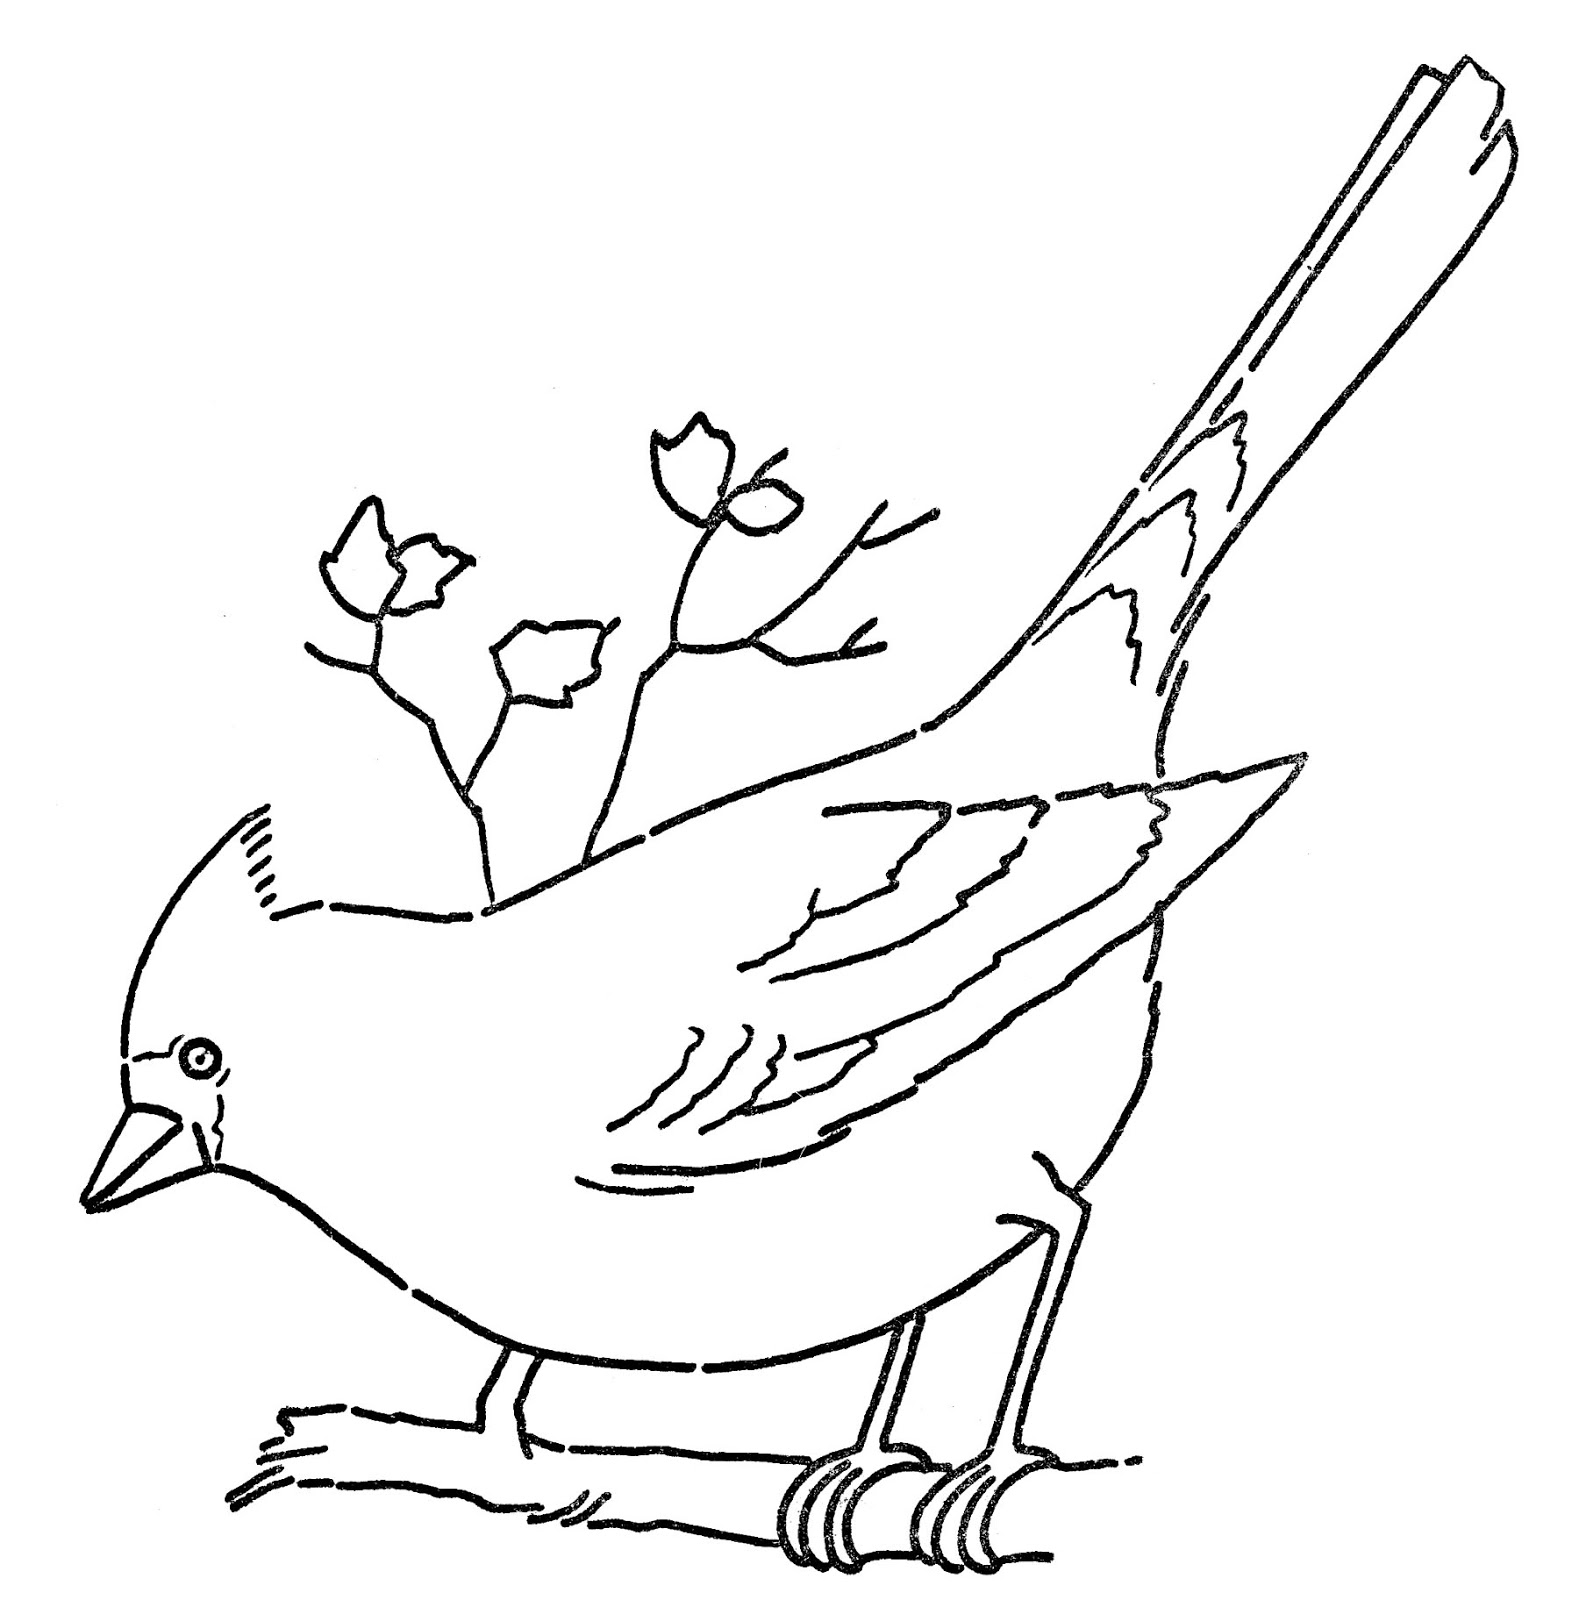 Free Line Art : Line art coloring page cardinal on branch the